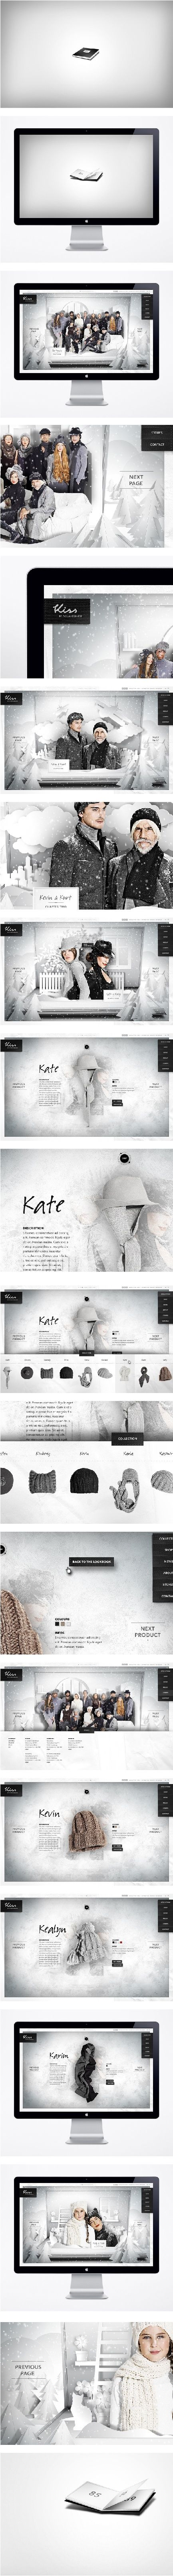 creative #web #design